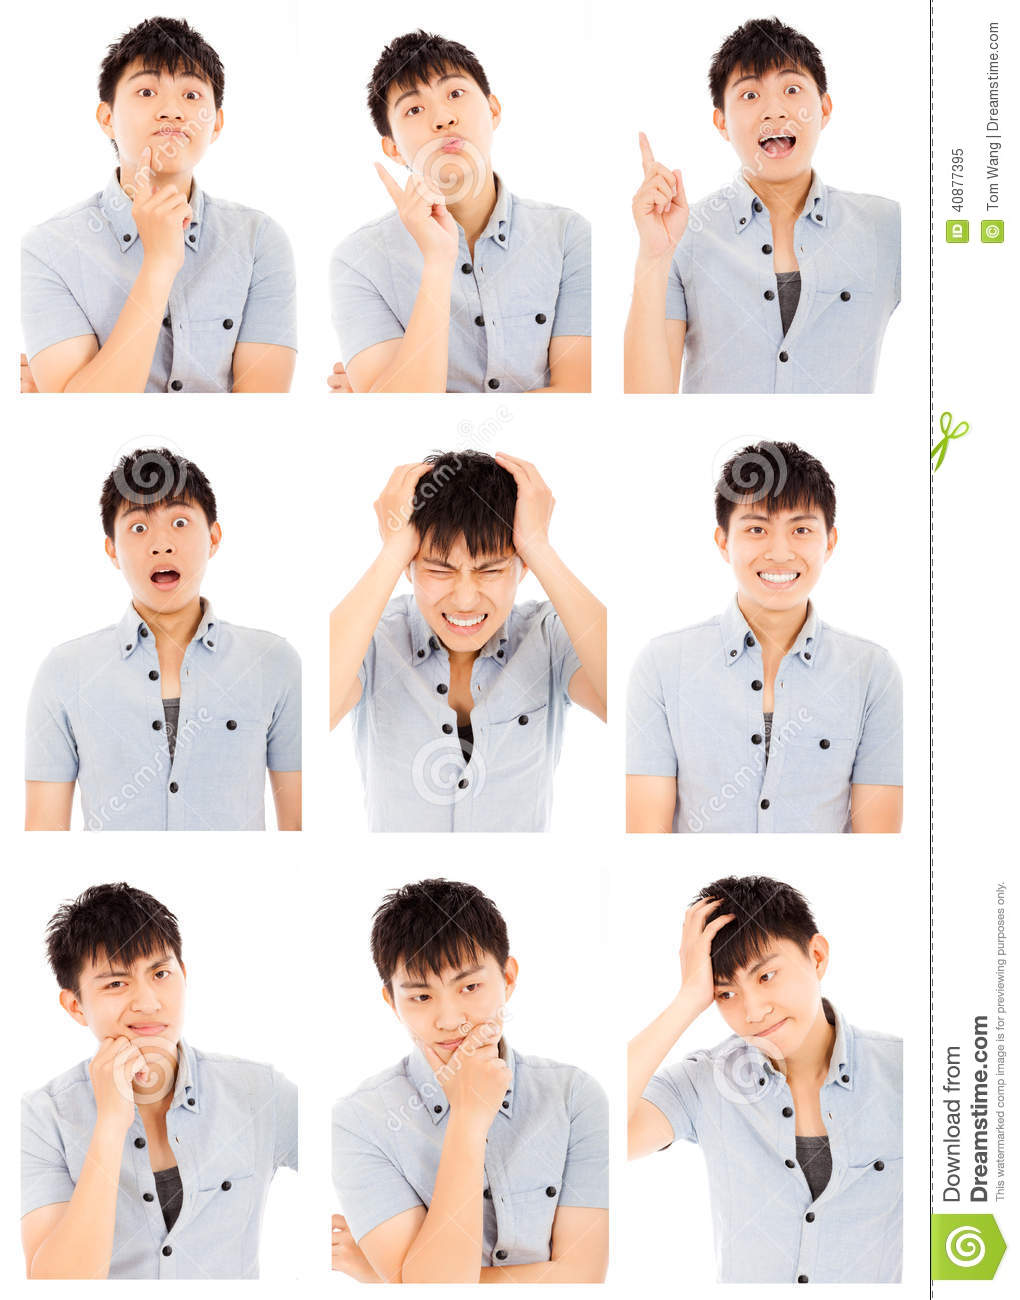 Chinese appropriate facial expressions